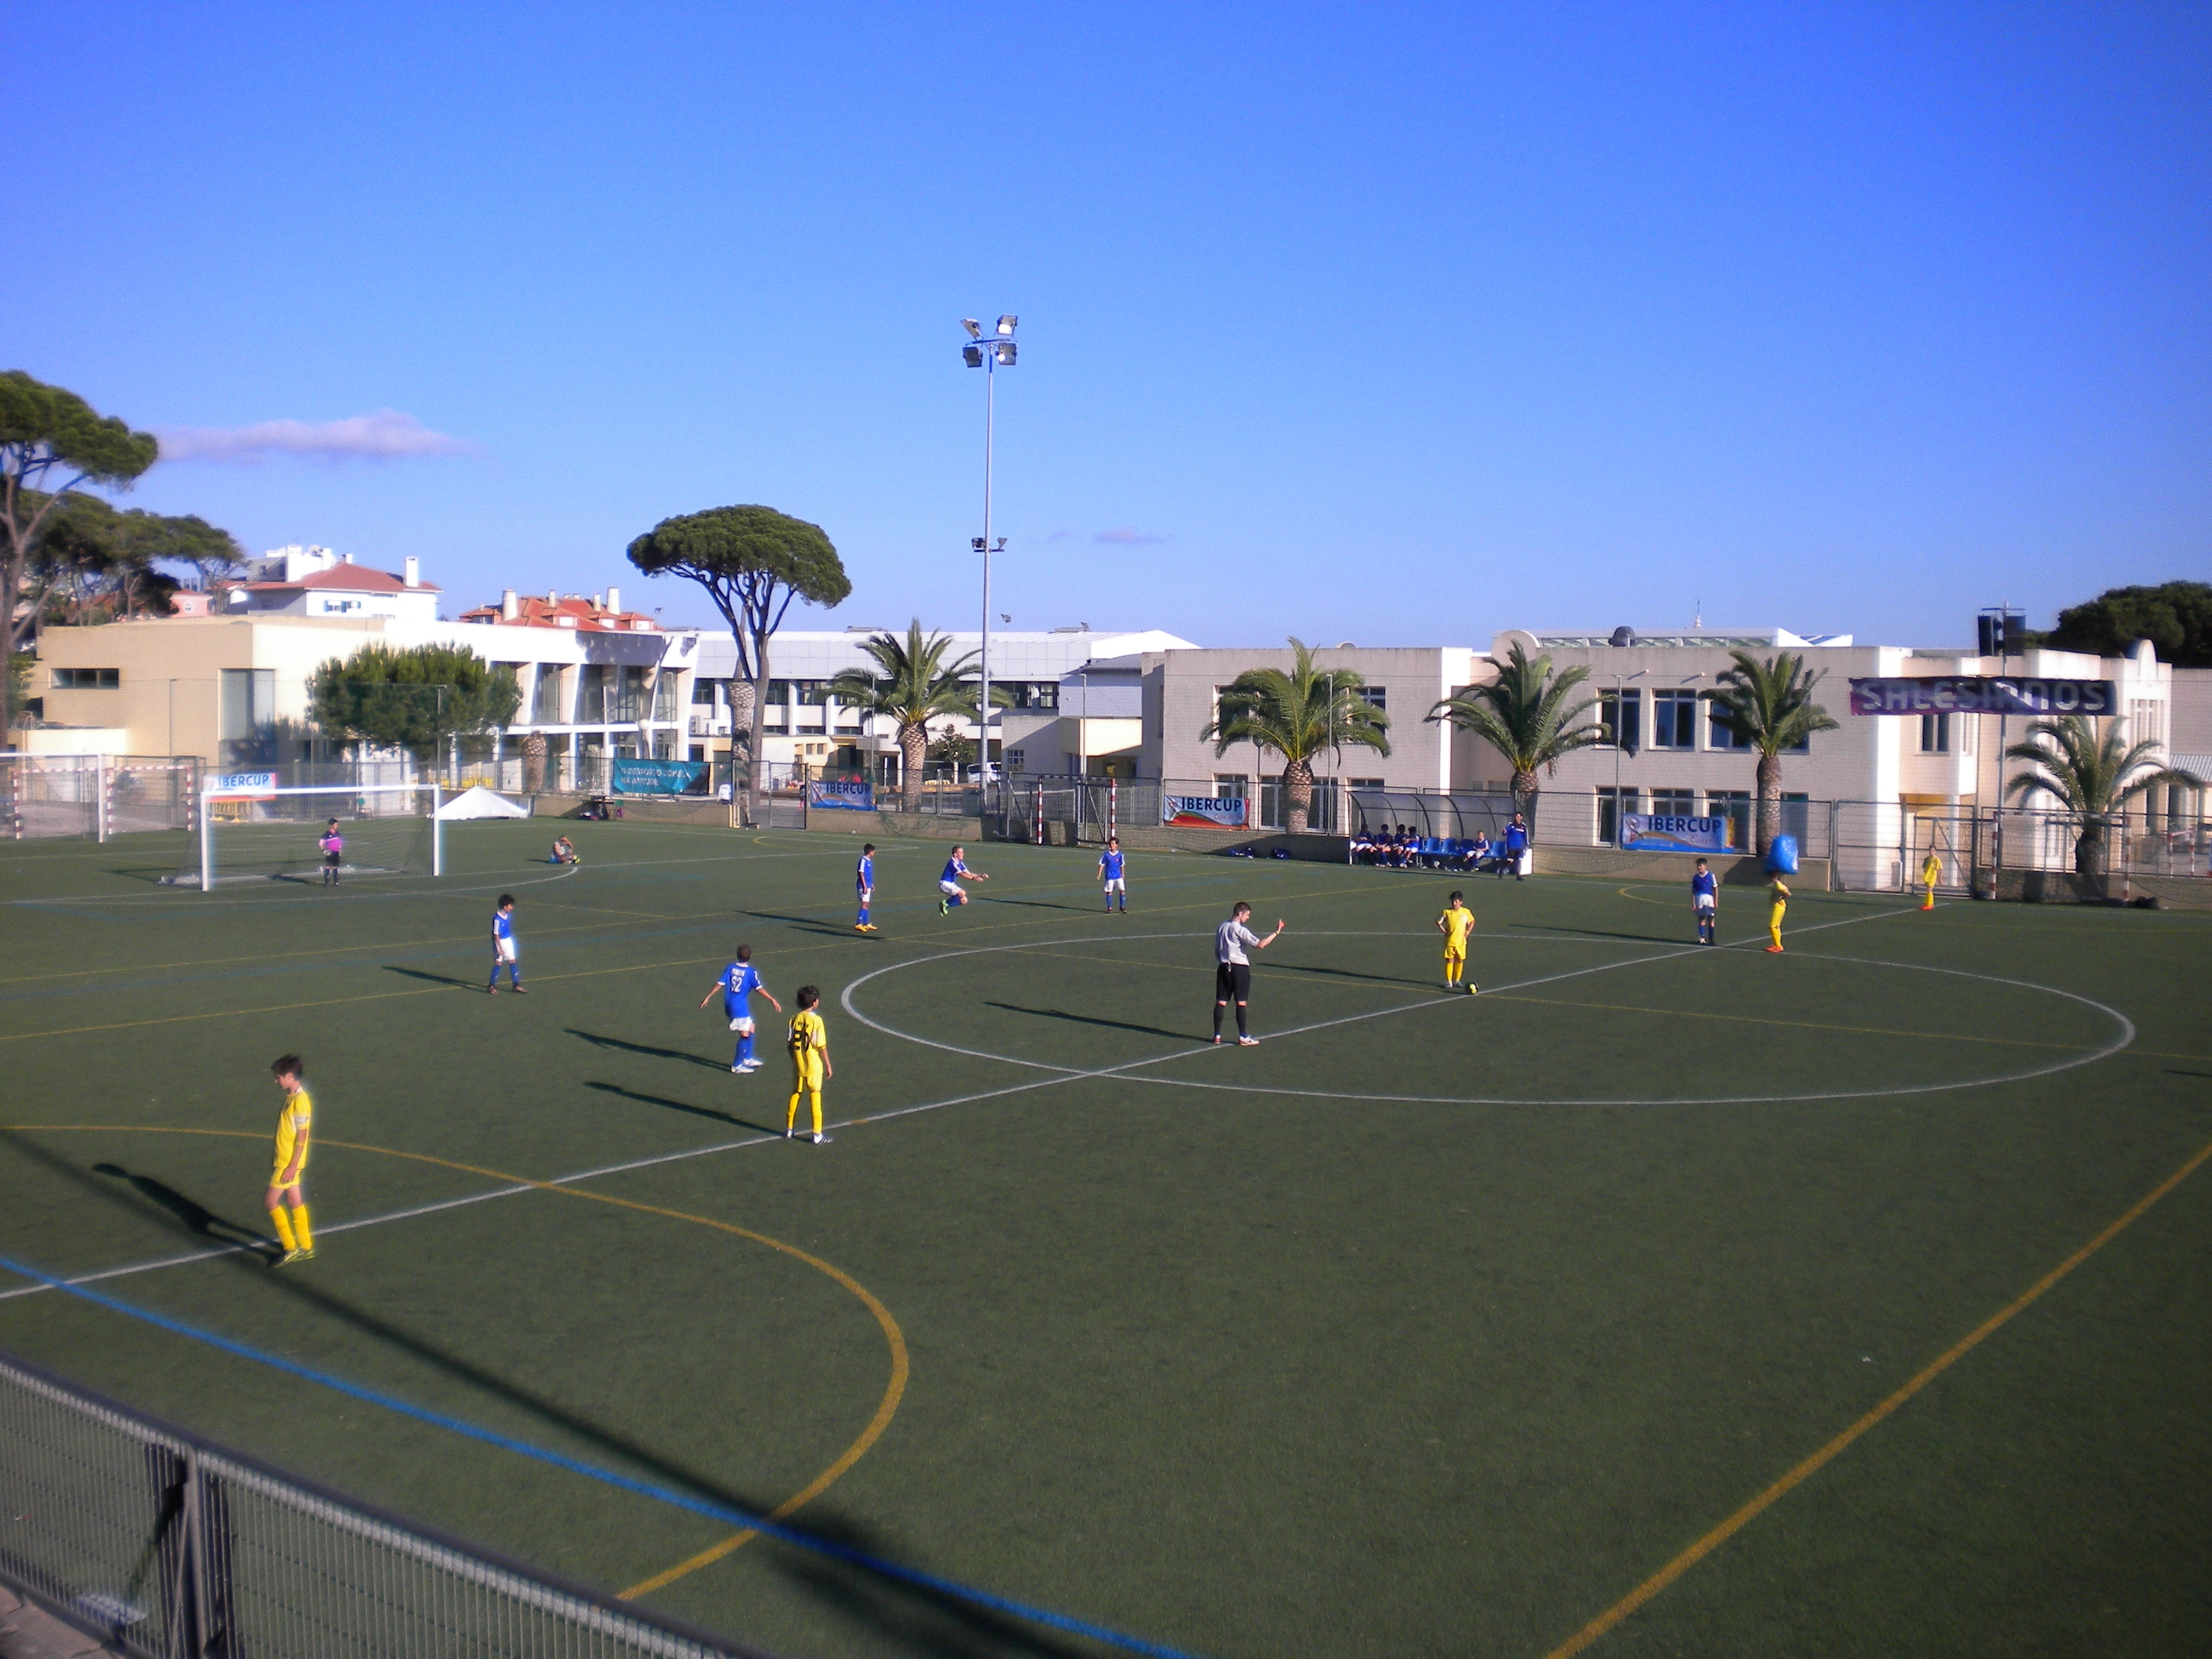 image of Brazil soccer USA professional soccer training sessions for schools